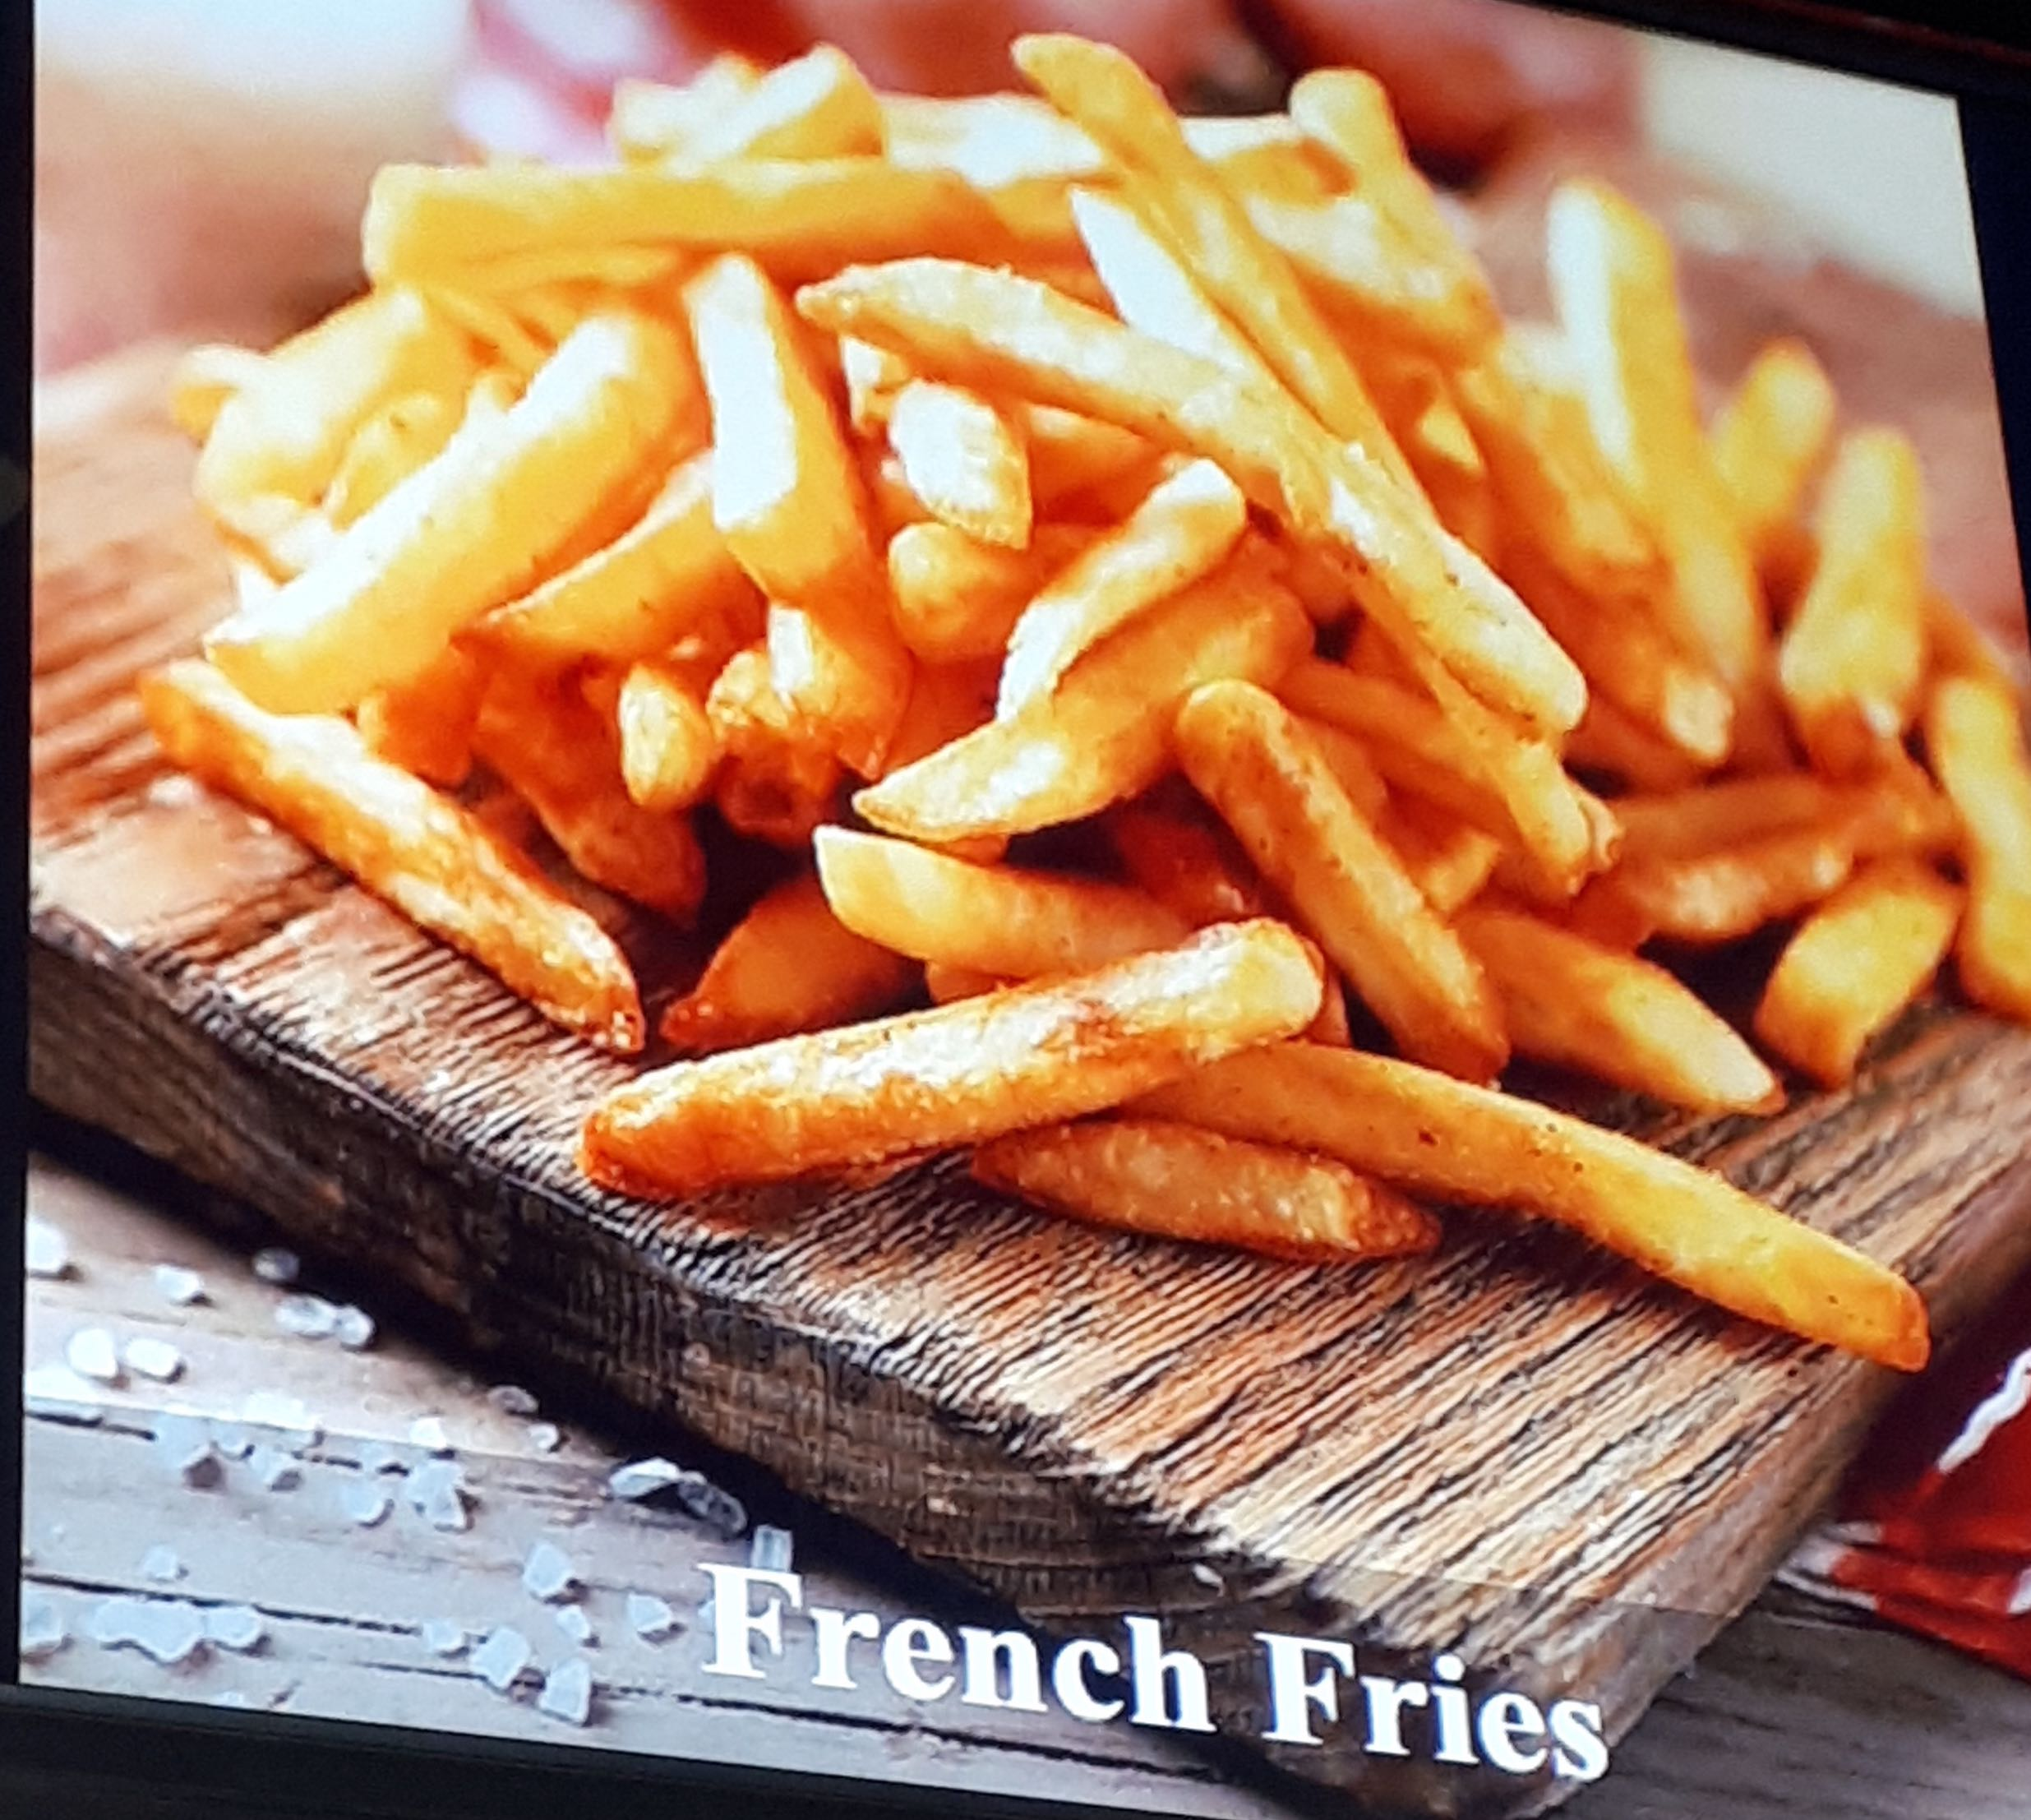 French Fries $1